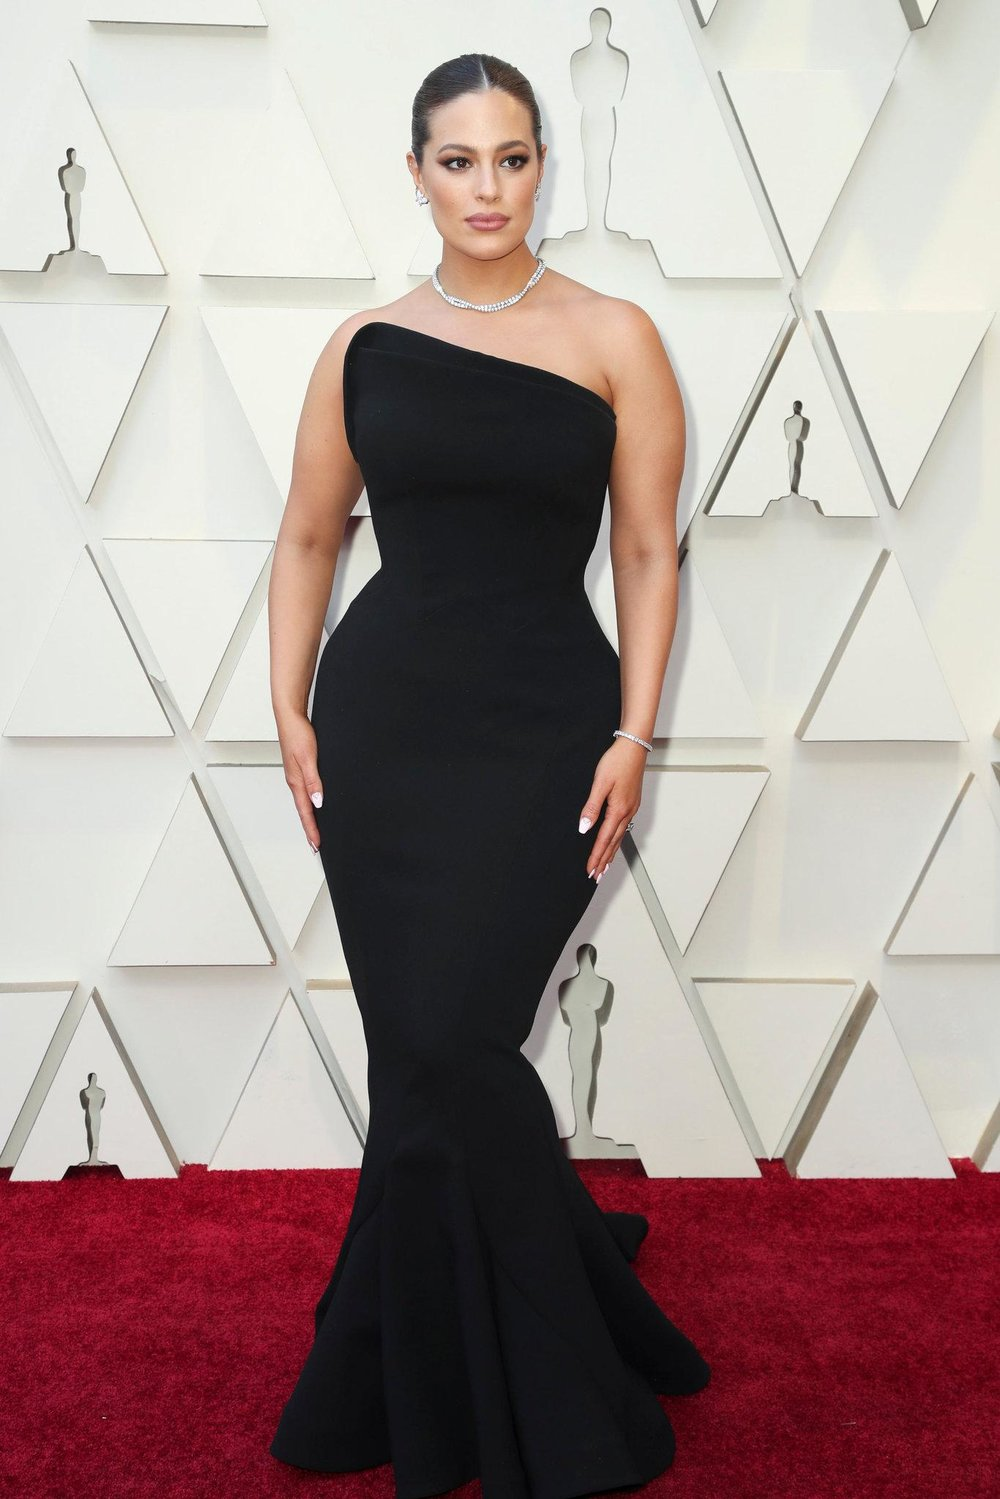 josh-oscars-2019-814-ashley-graham-superJumbo-v2.jpg